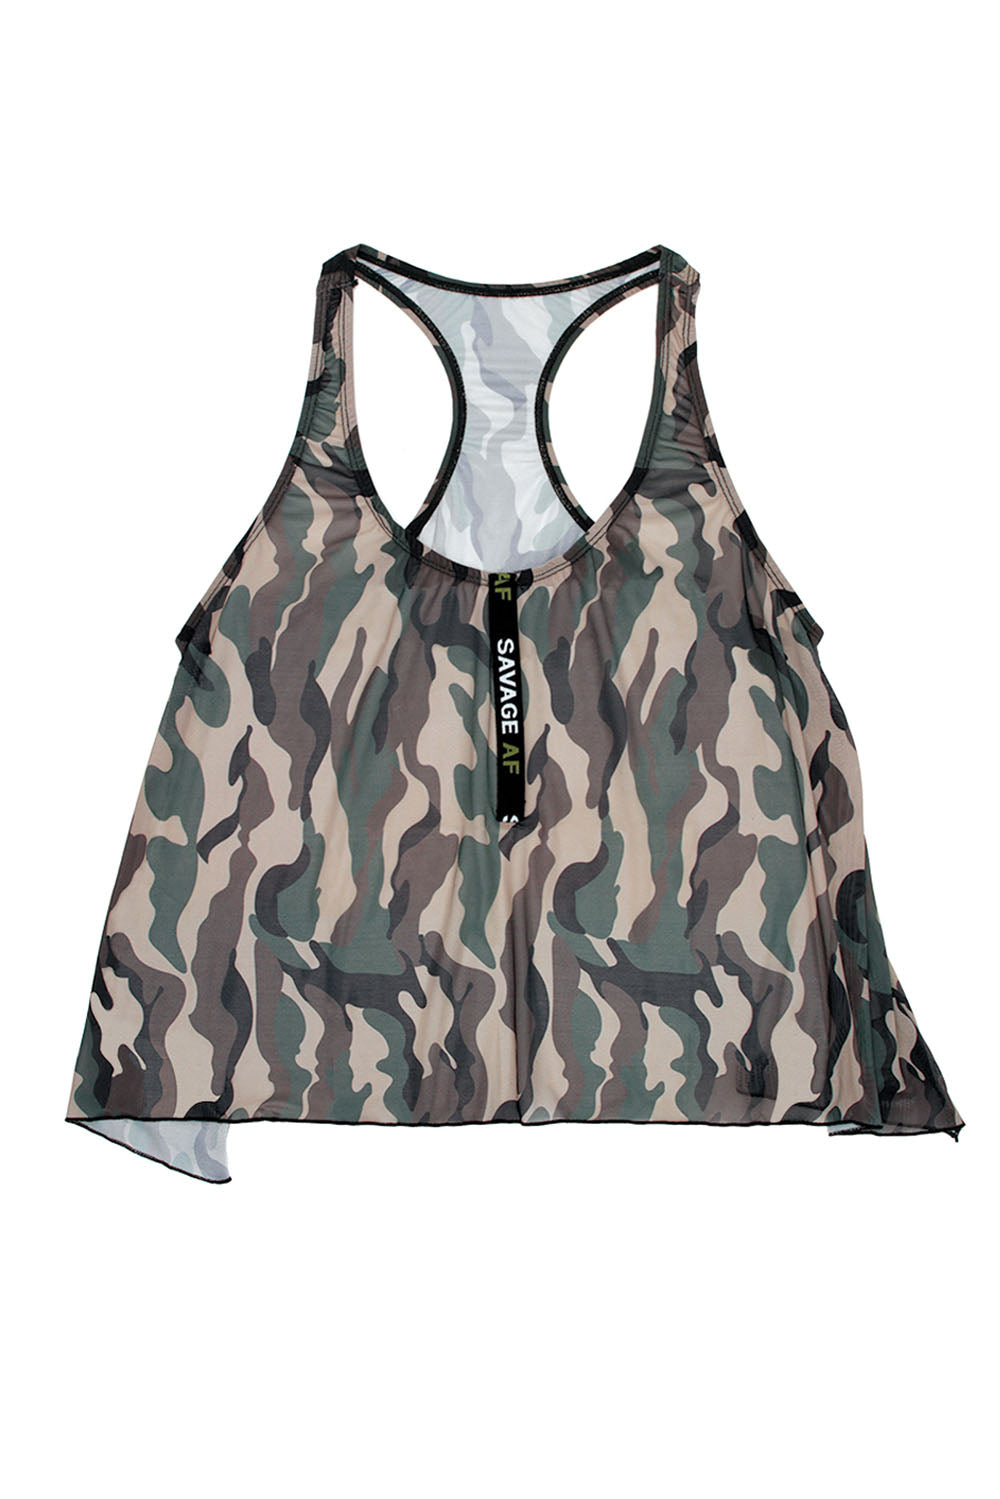 Savage Af Swing Top - Forest Camo - S/m - Fantasy Lingerie -  Los Angeles Lingerie